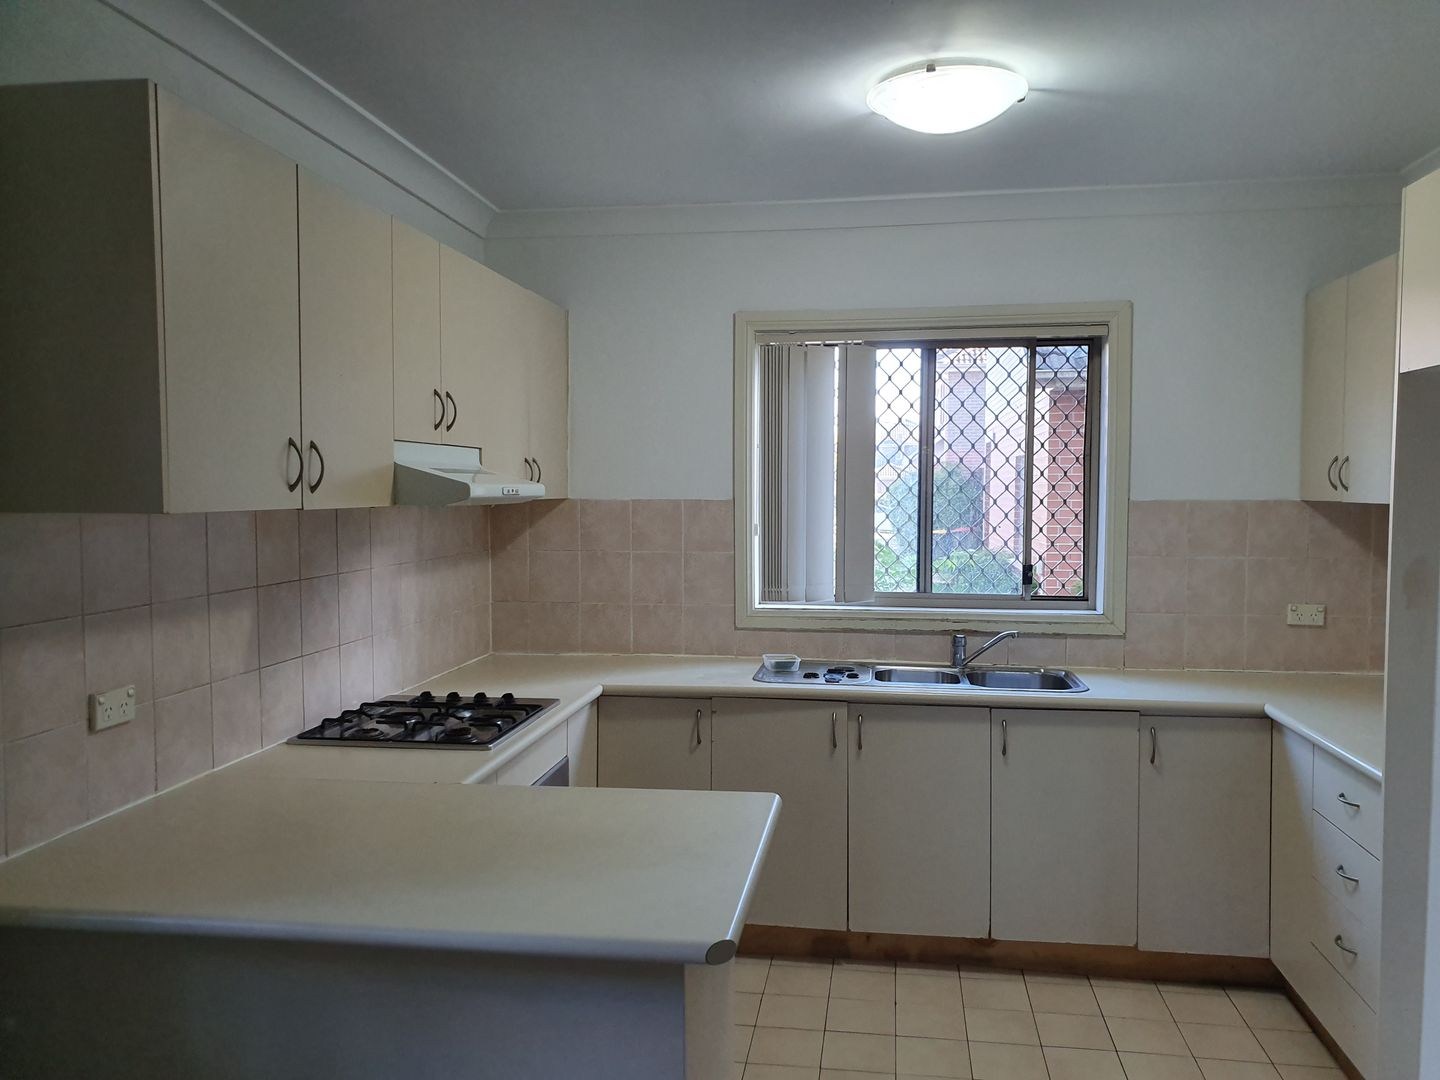 2/11 Austral Avenue, Westmead NSW 2145, Image 1